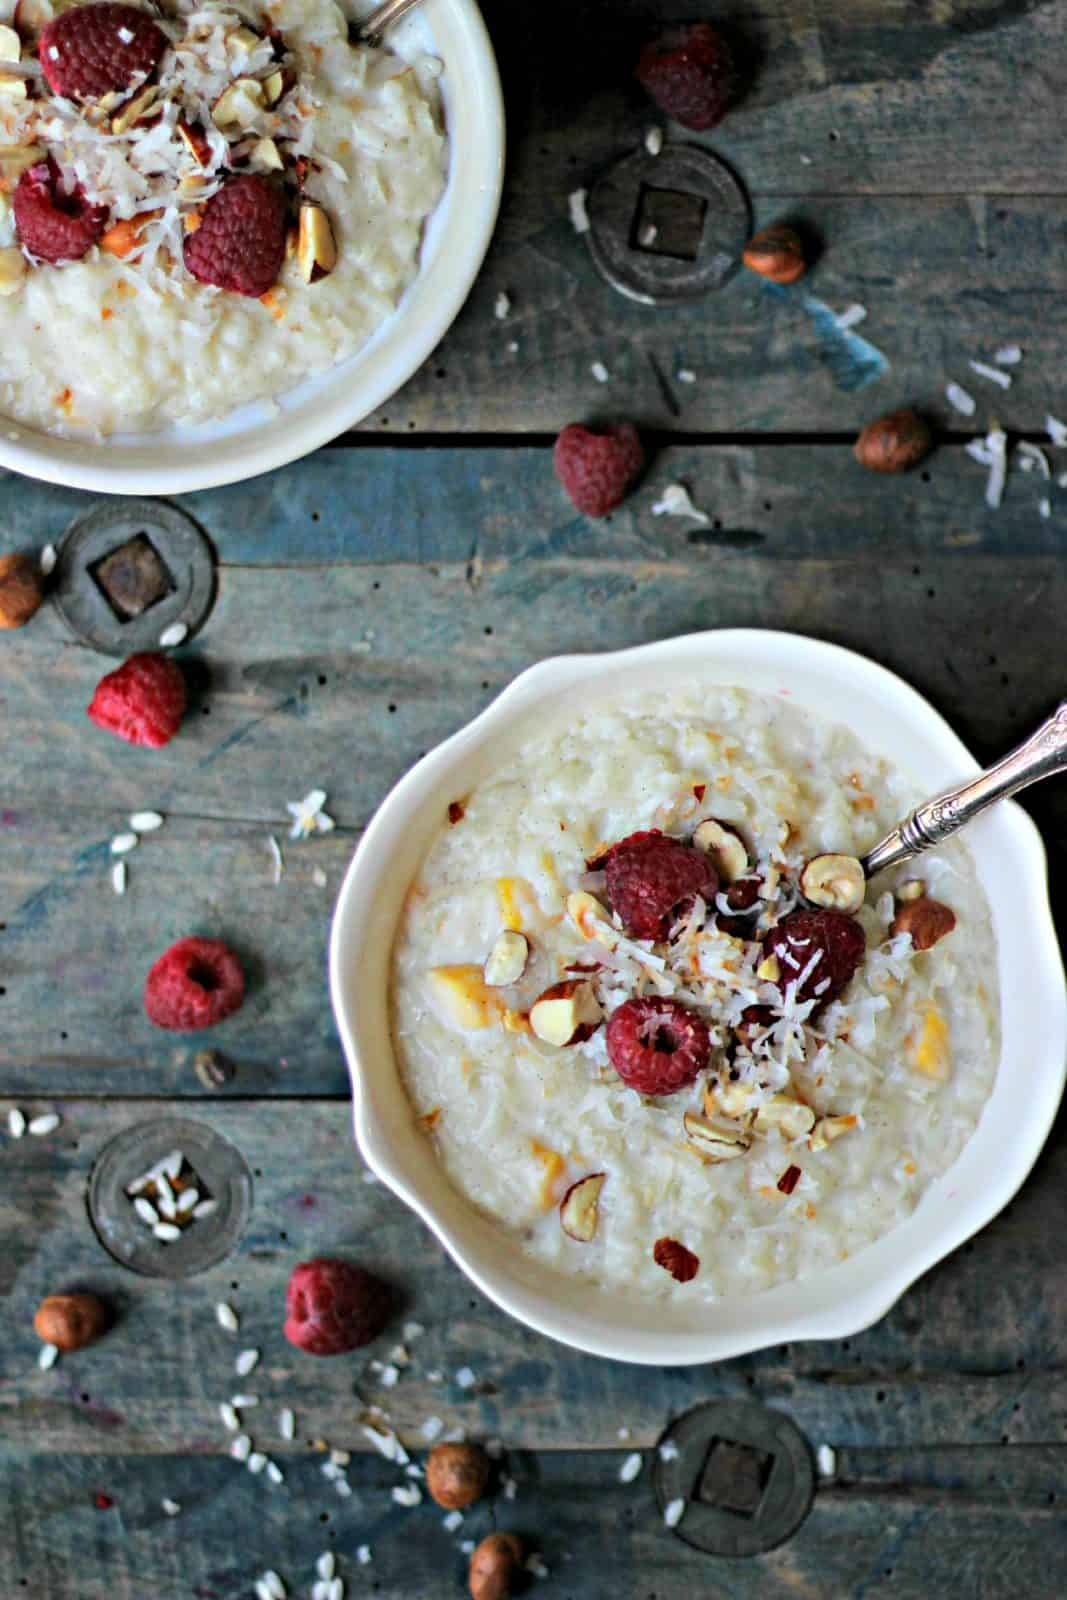 Rice Pudding in white bowls